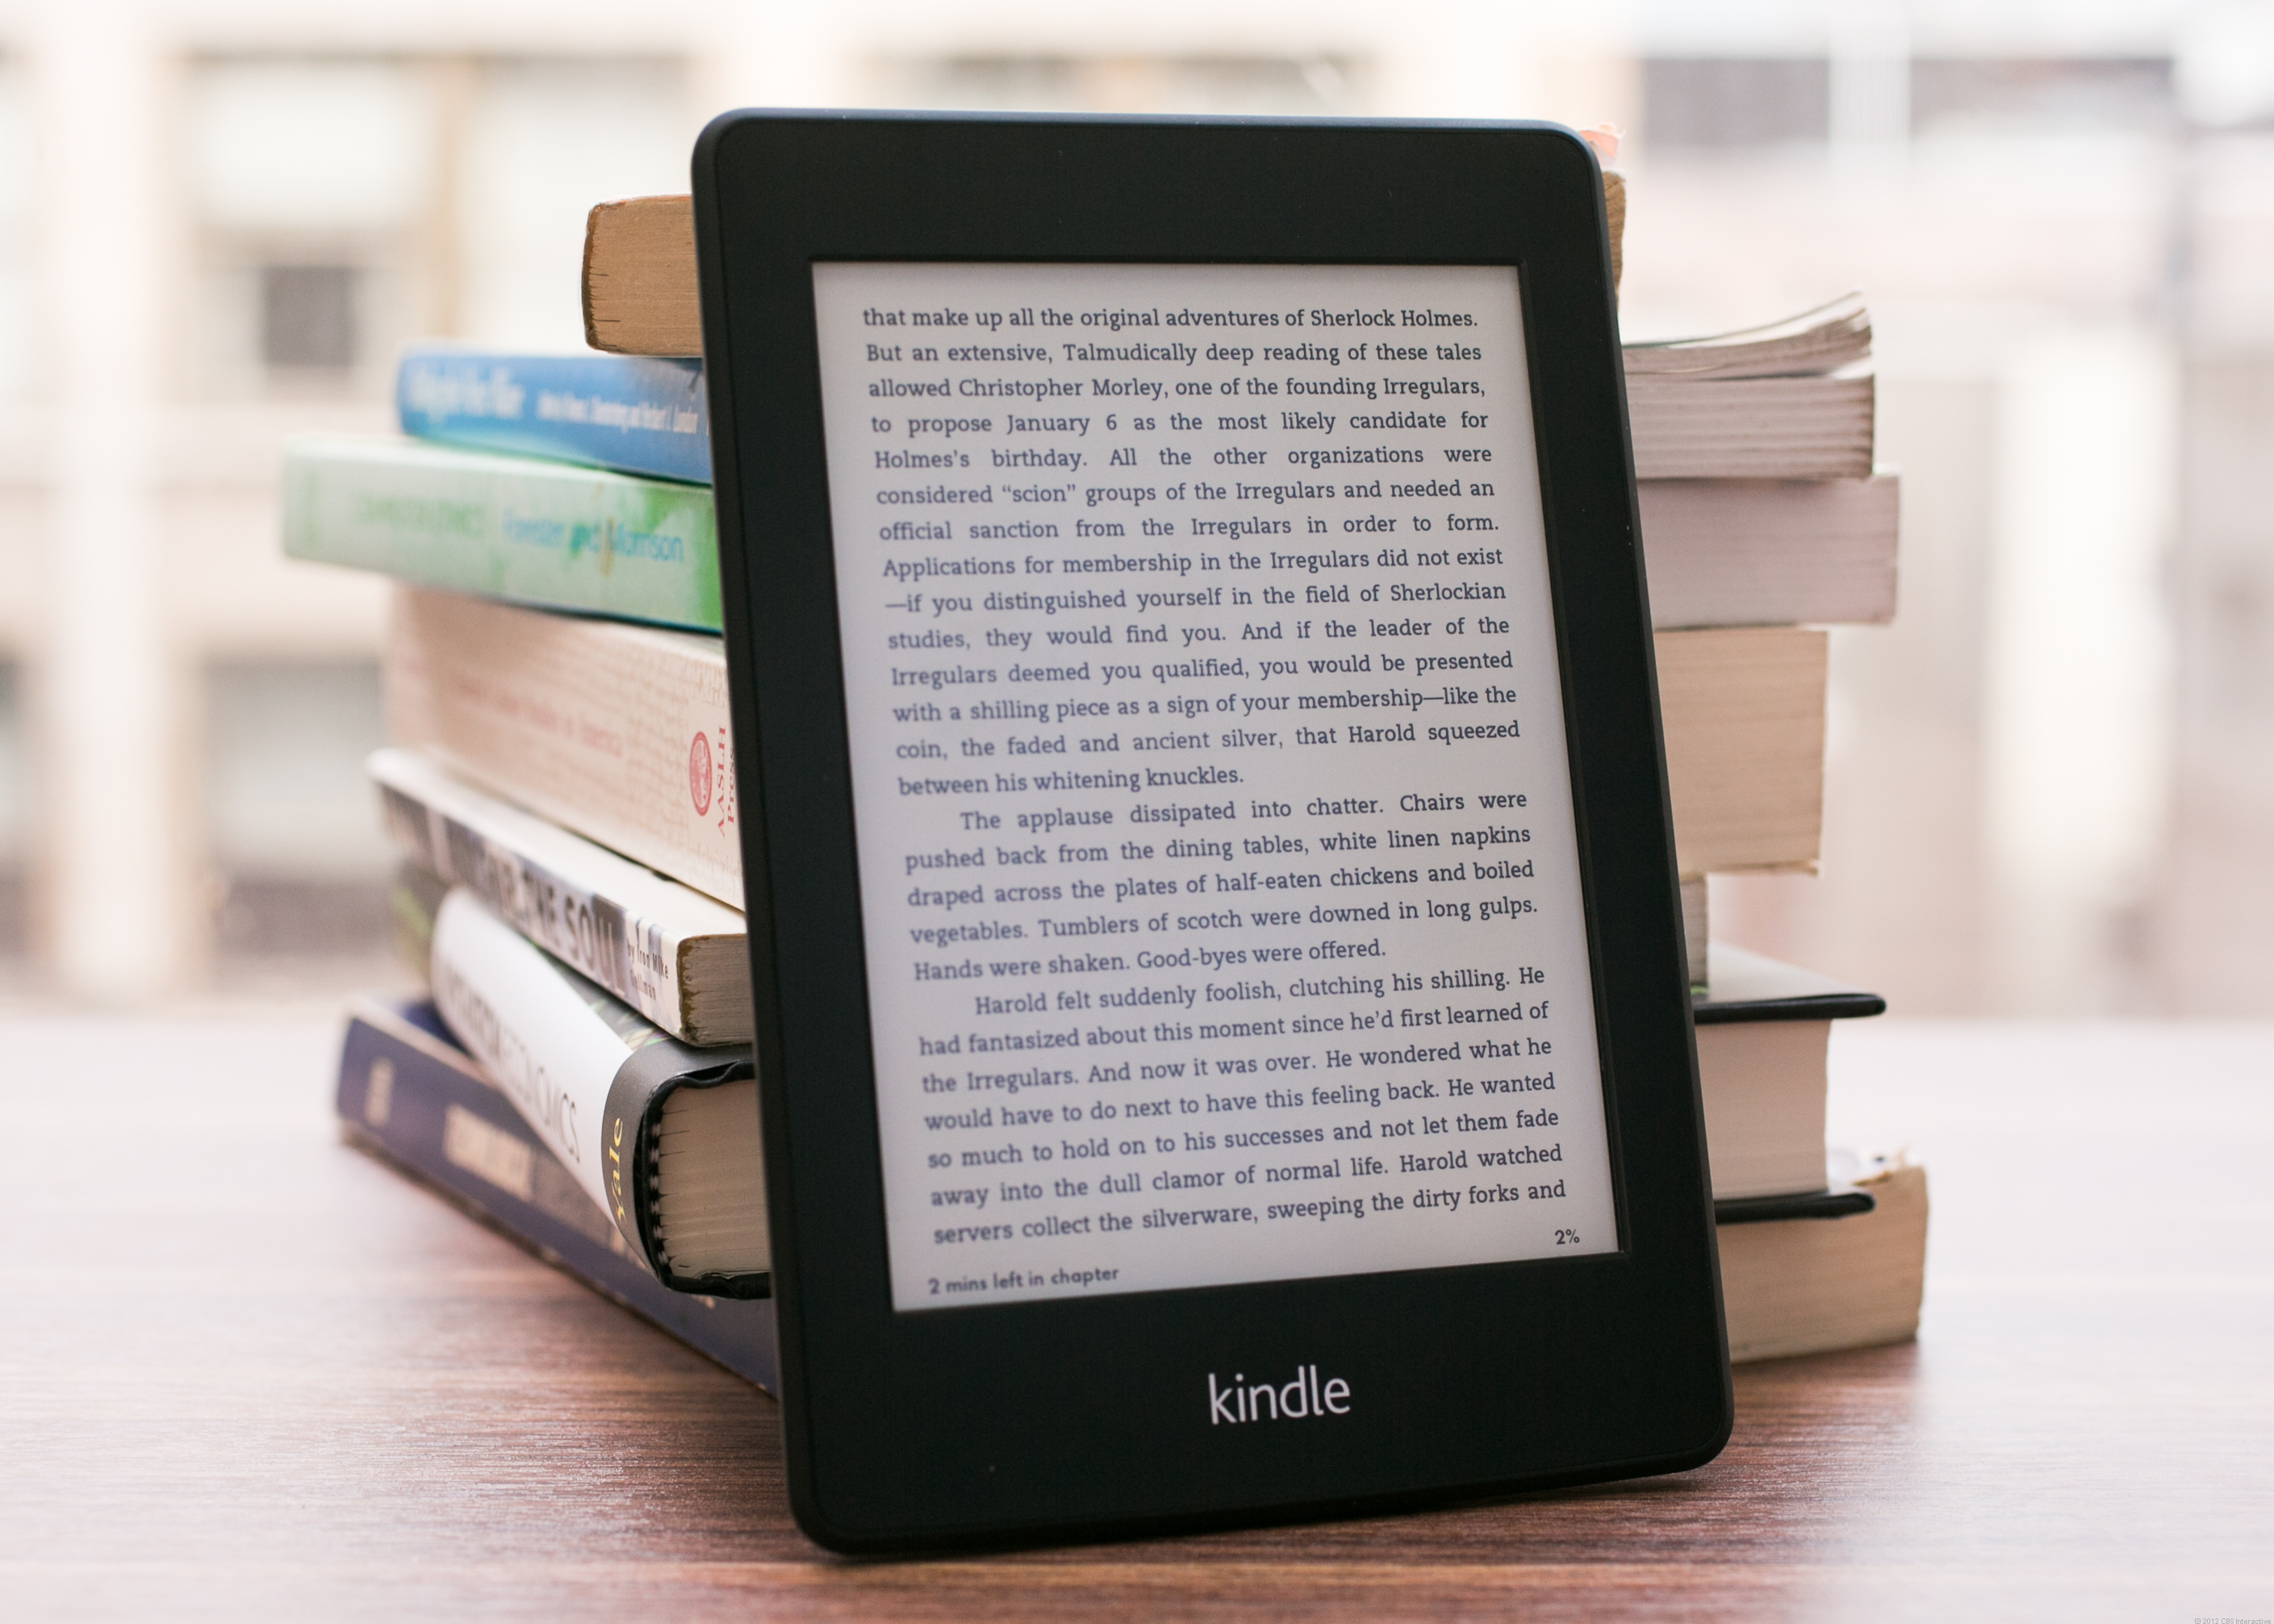 Amazon Kindle Paperwhite 3G (special offers)